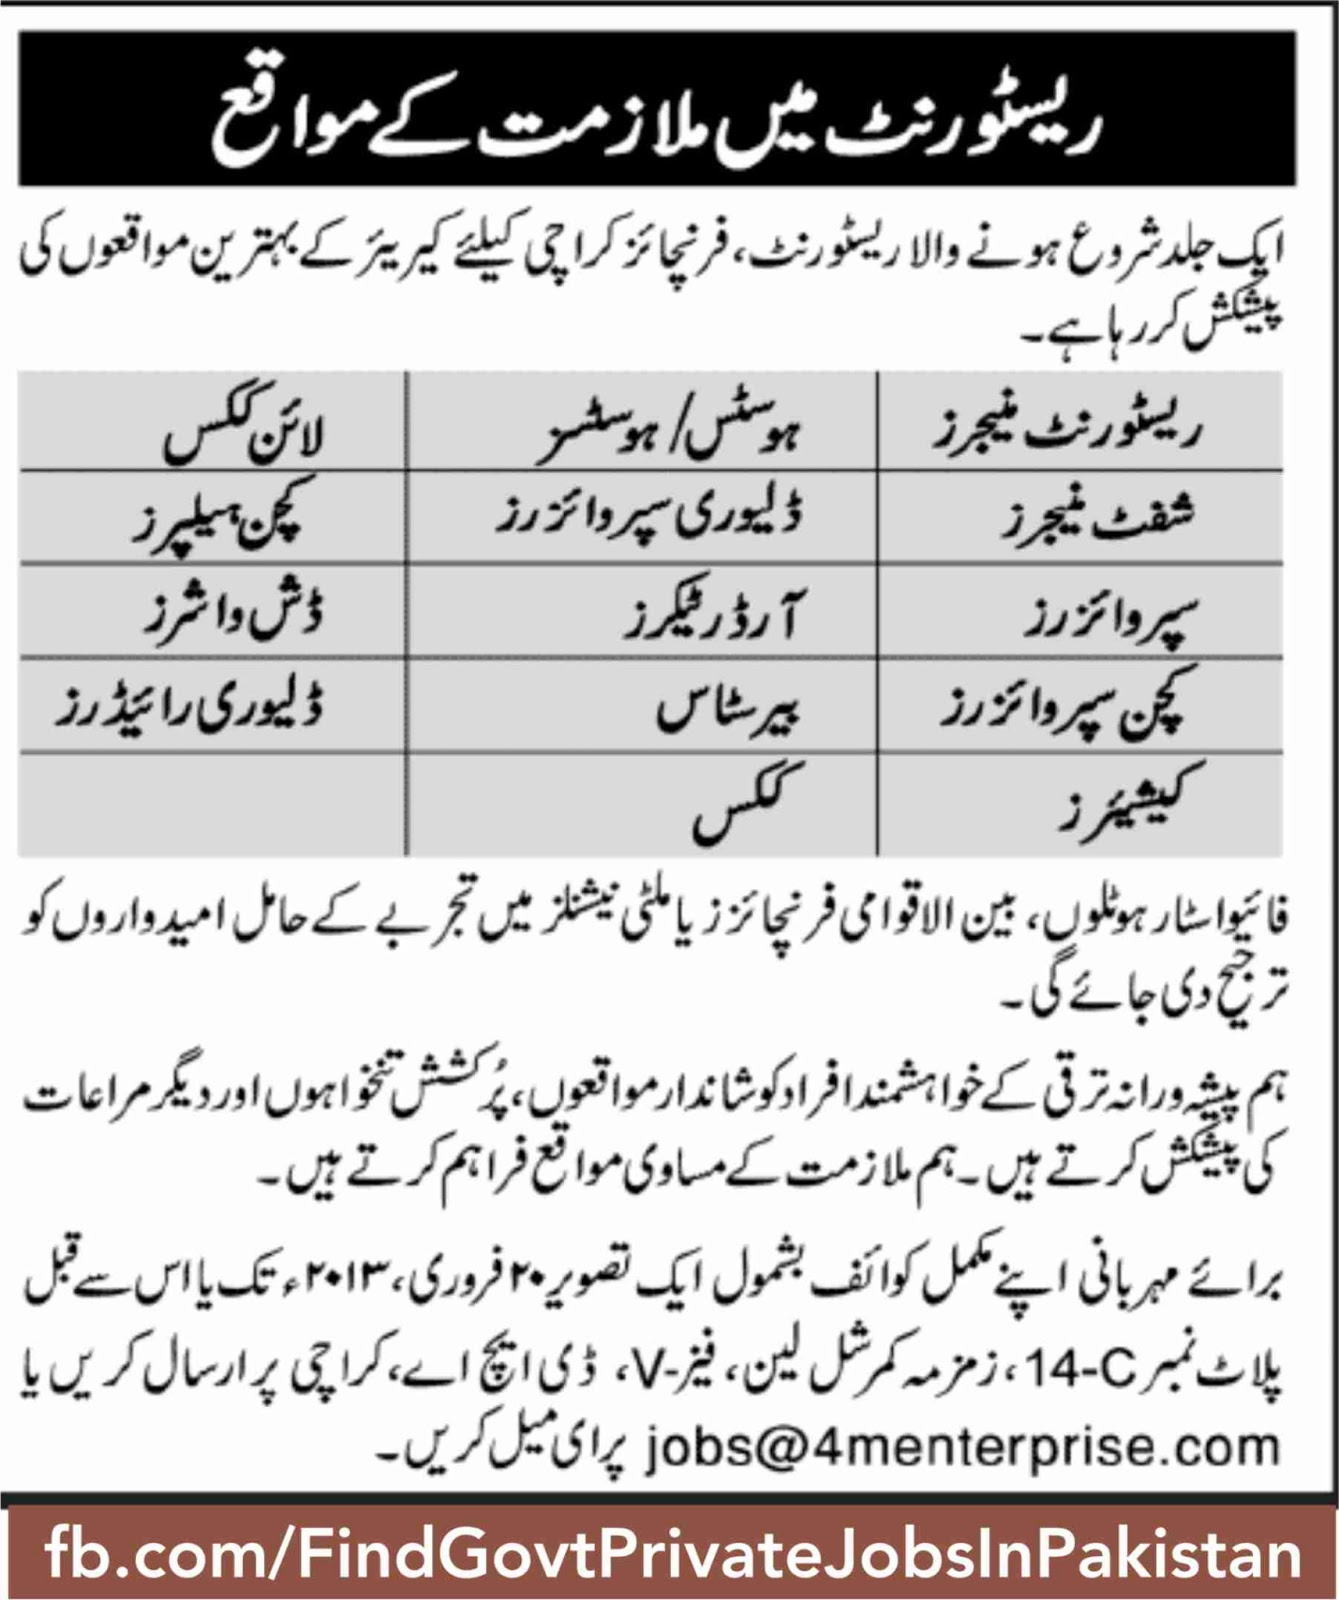 jang jobs ads